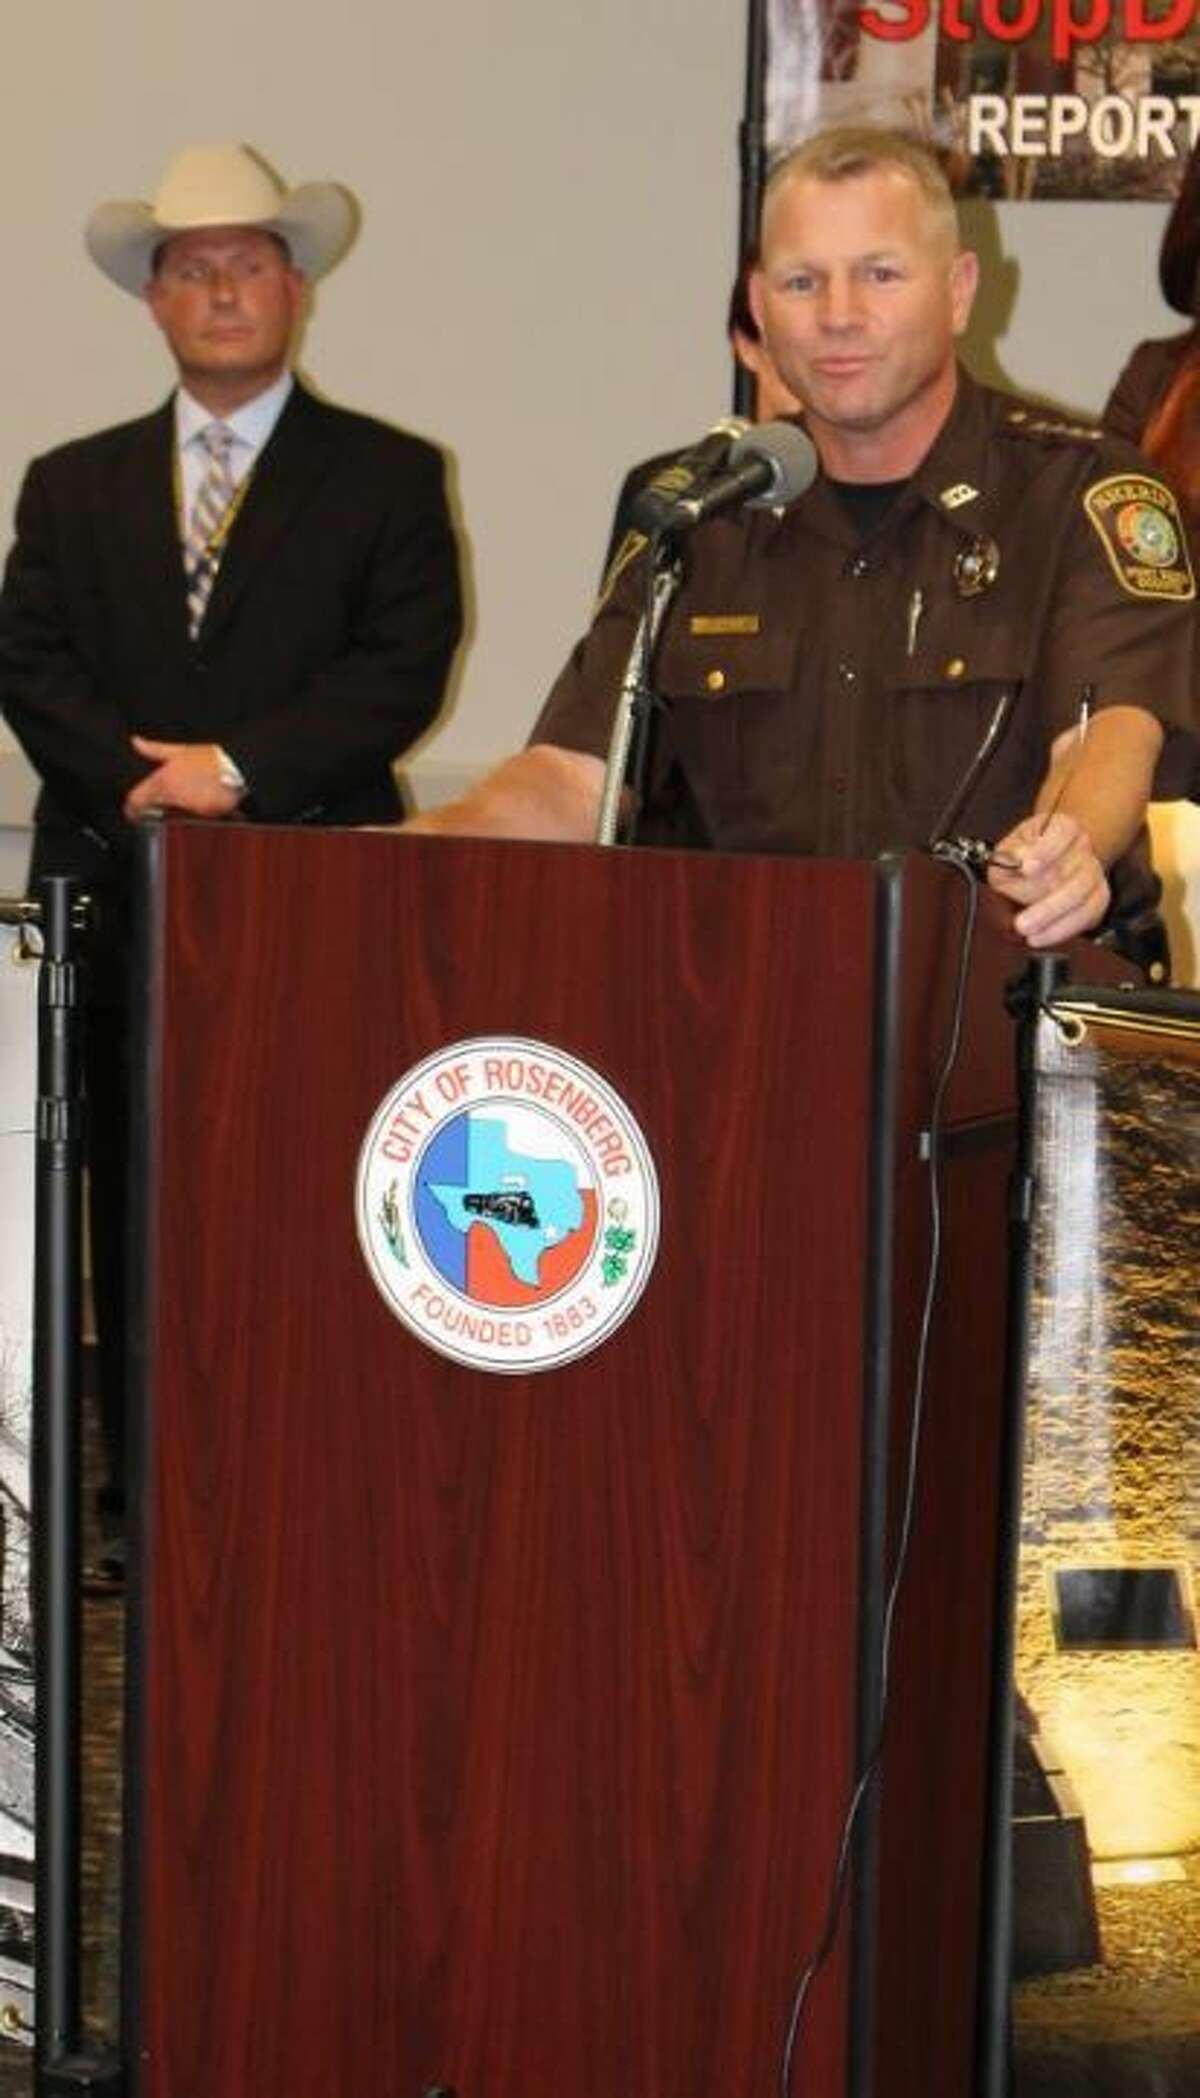 Fort Bend County Sheriff Troy E. Nehls spoke briefly at the event lasy Wednesday, May 11, sharing his appreciation on the development of the new website that will combat drug operations in Fort Bend County.